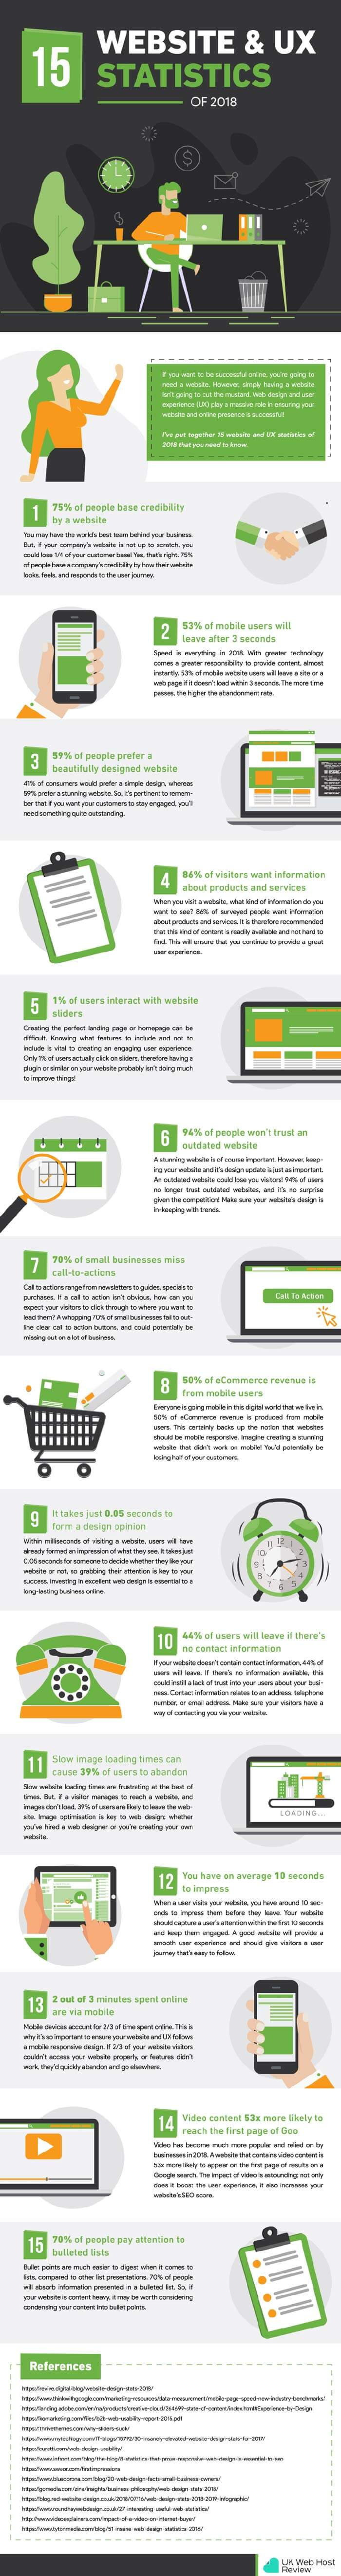 infografica statistica website user experience ux